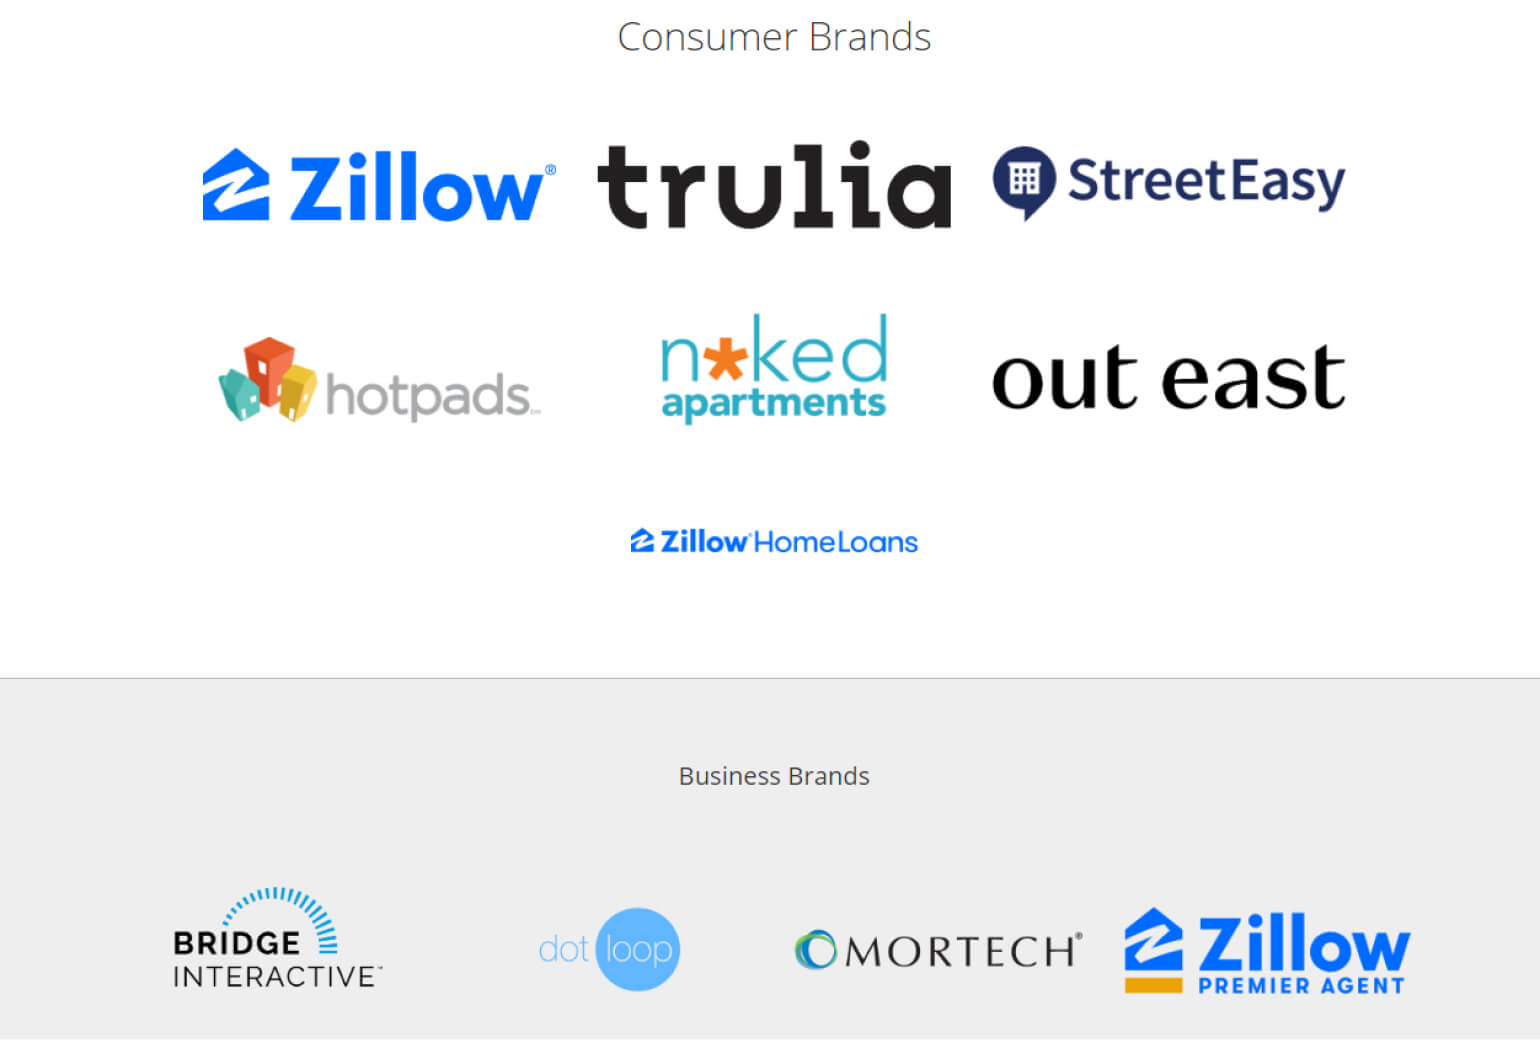 Proptech Giant Zillow Hits A Home Run With Their Excellent Performance -Body Image 4